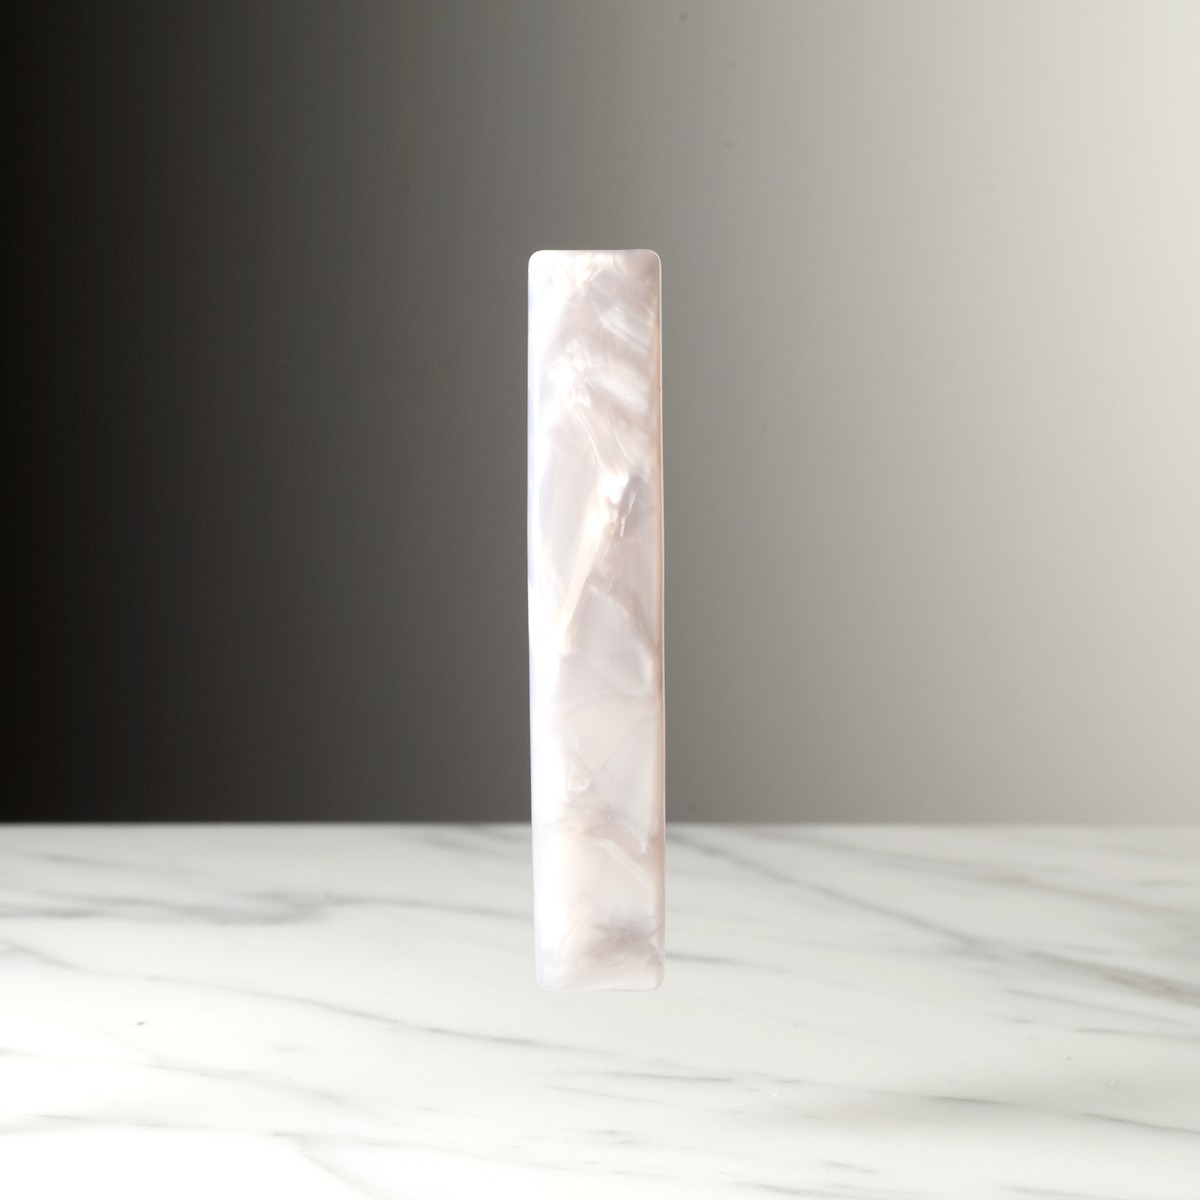 baguette-small-format-mother-of-pearl